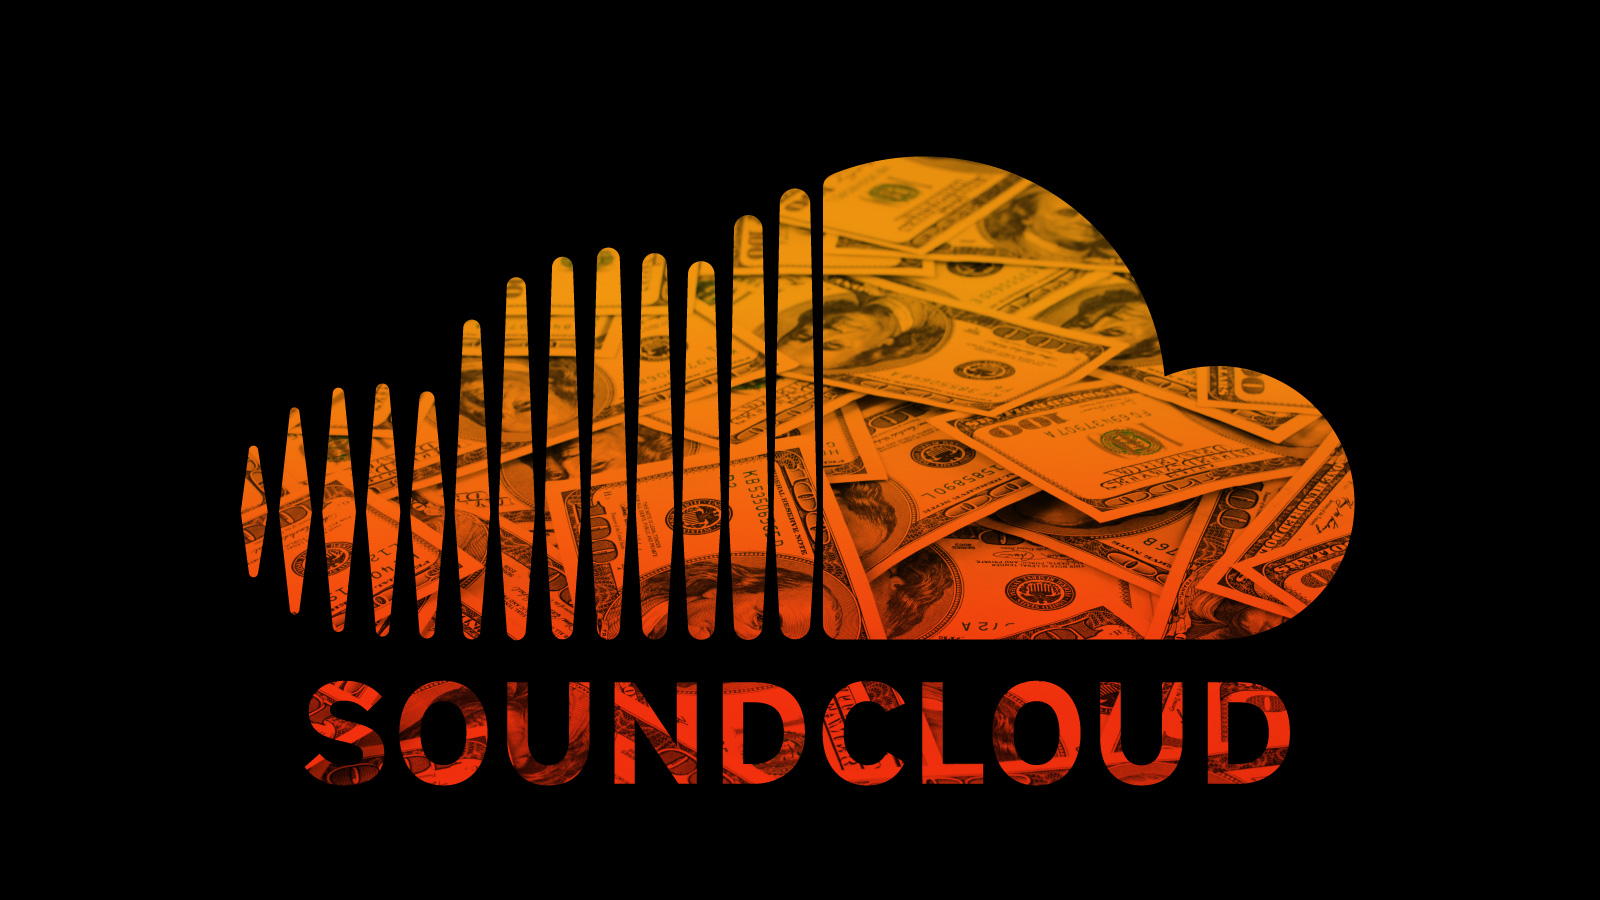 Soundcloud secures $170mn investment